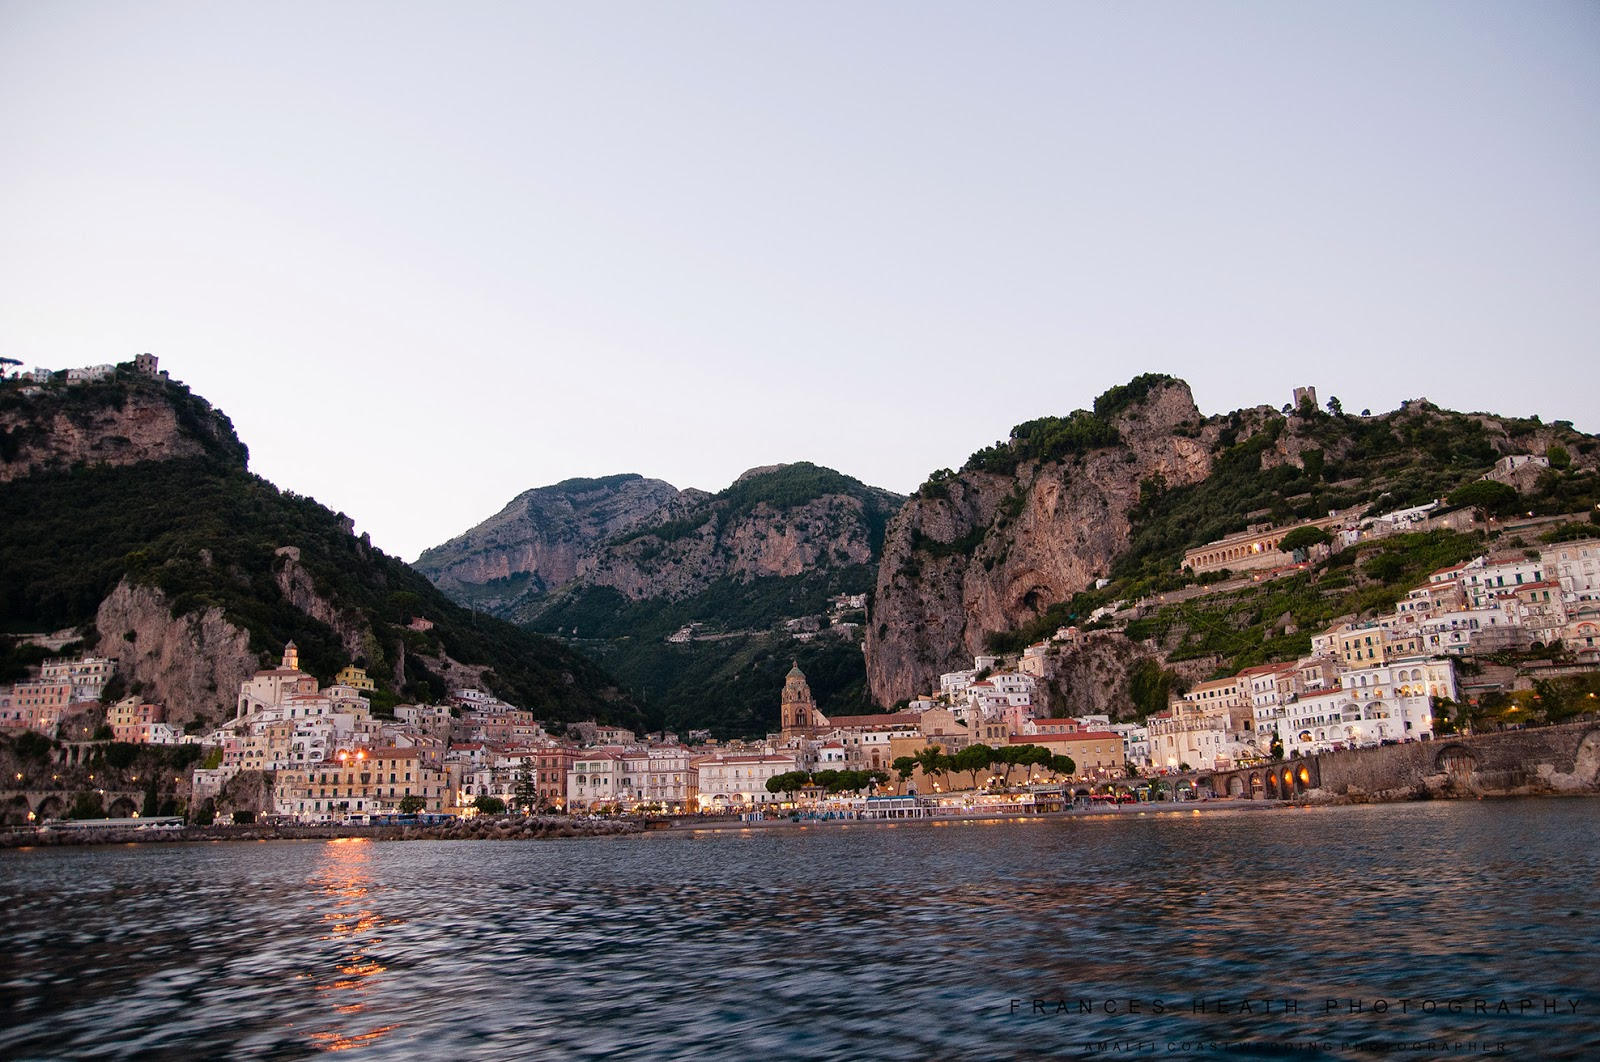 View of Amalfi during the wedding boat cruise